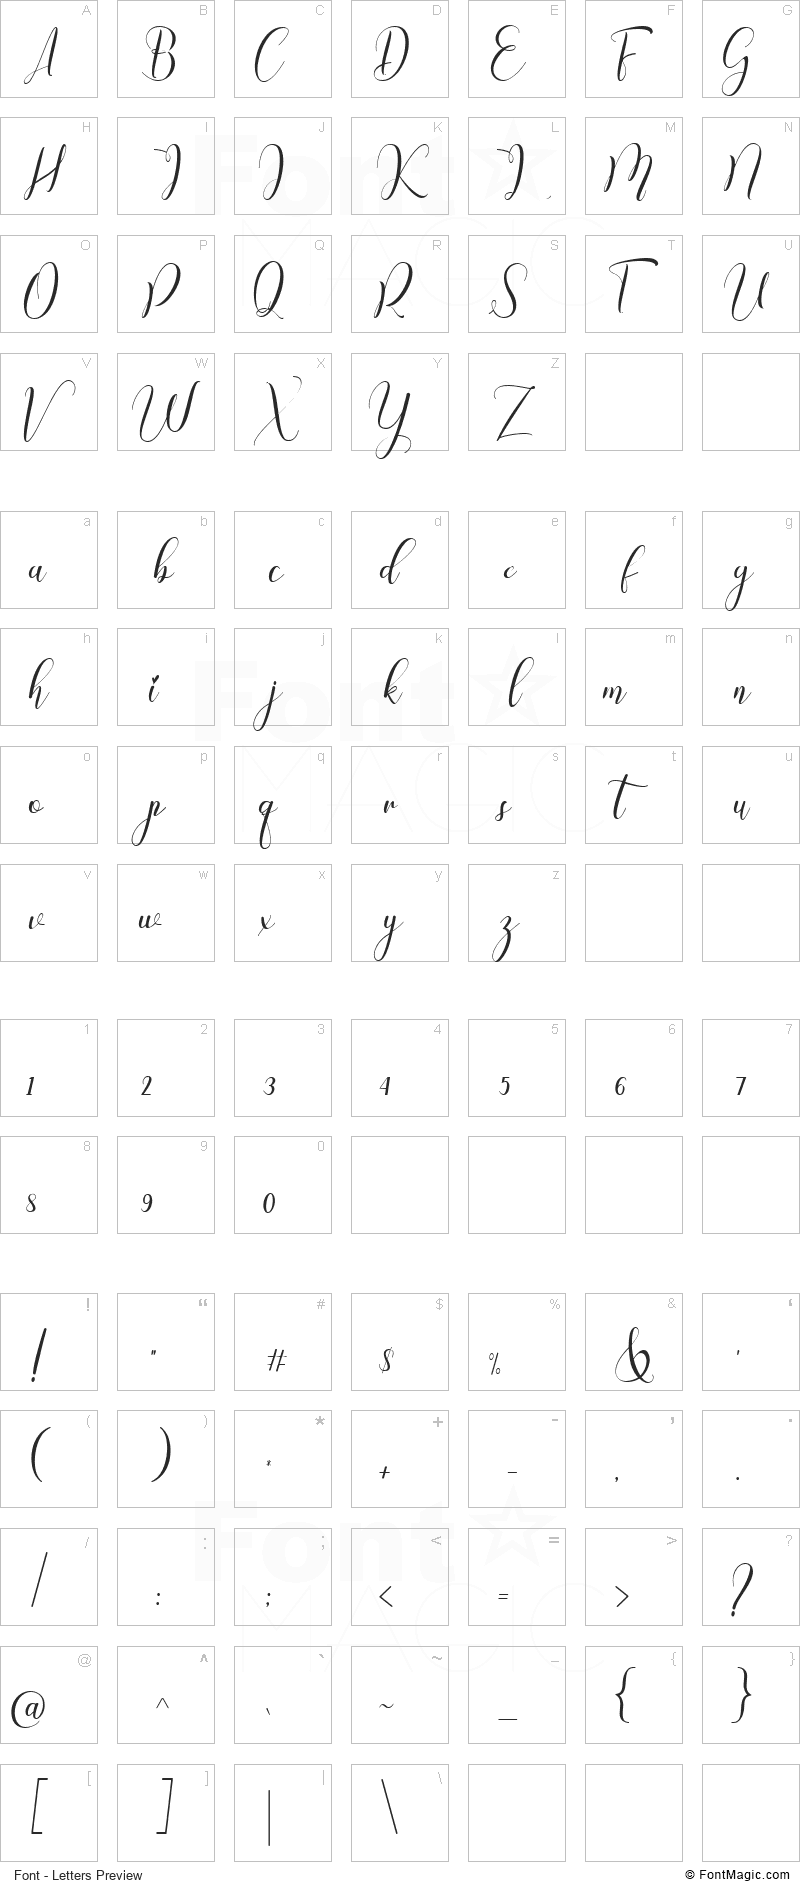 Chinthya Font - All Latters Preview Chart